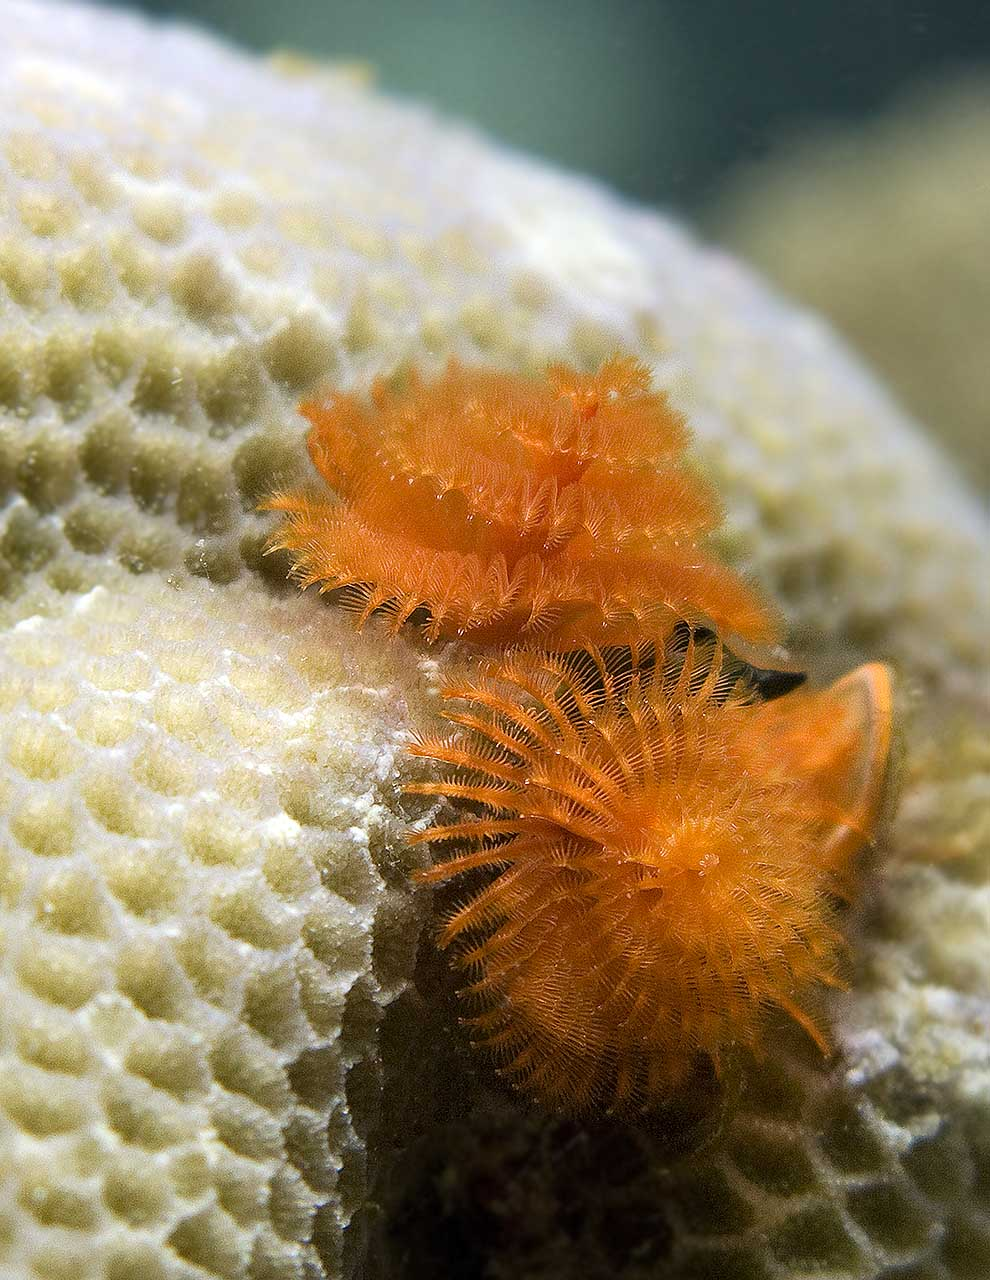 The Tangerine Dream variety of Christmas Tree Worm